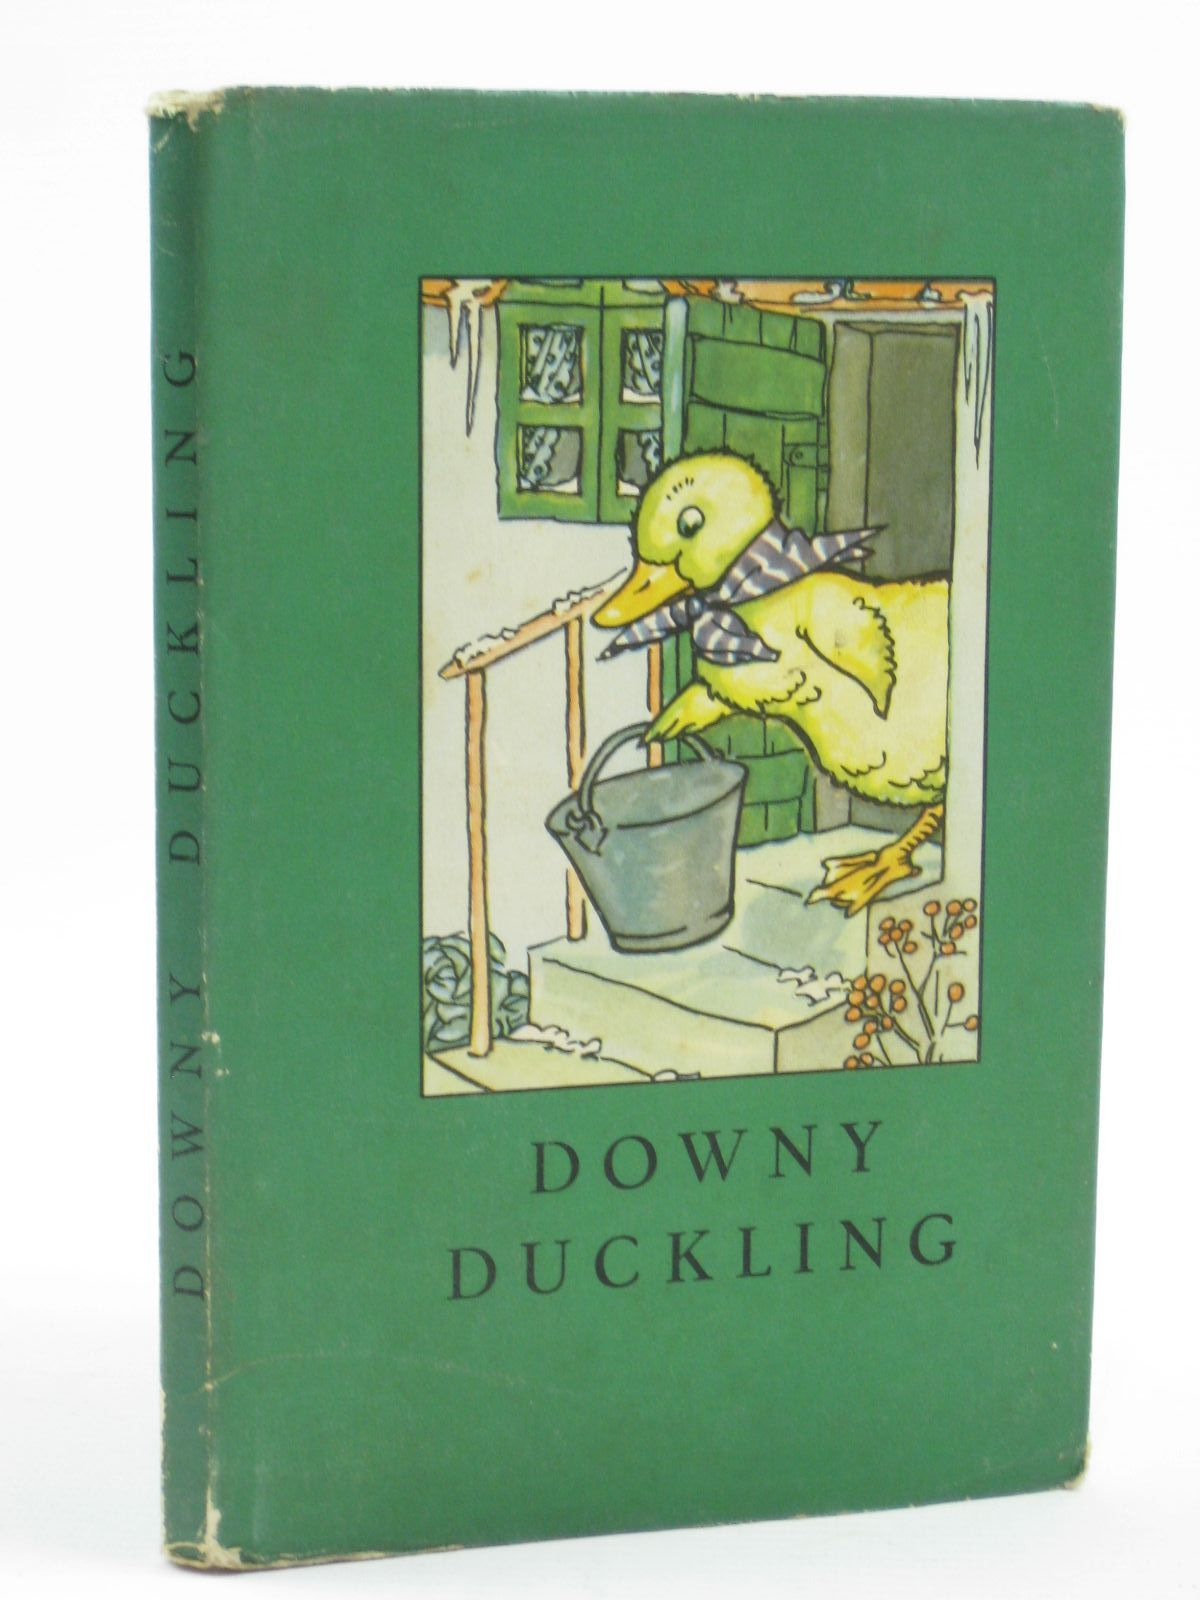 Photo of DOWNY DUCKLING written by Macgregor, A.J. Perring, W. illustrated by Macgregor, A.J. published by Wills & Hepworth Ltd. (STOCK CODE: 1406599)  for sale by Stella & Rose's Books